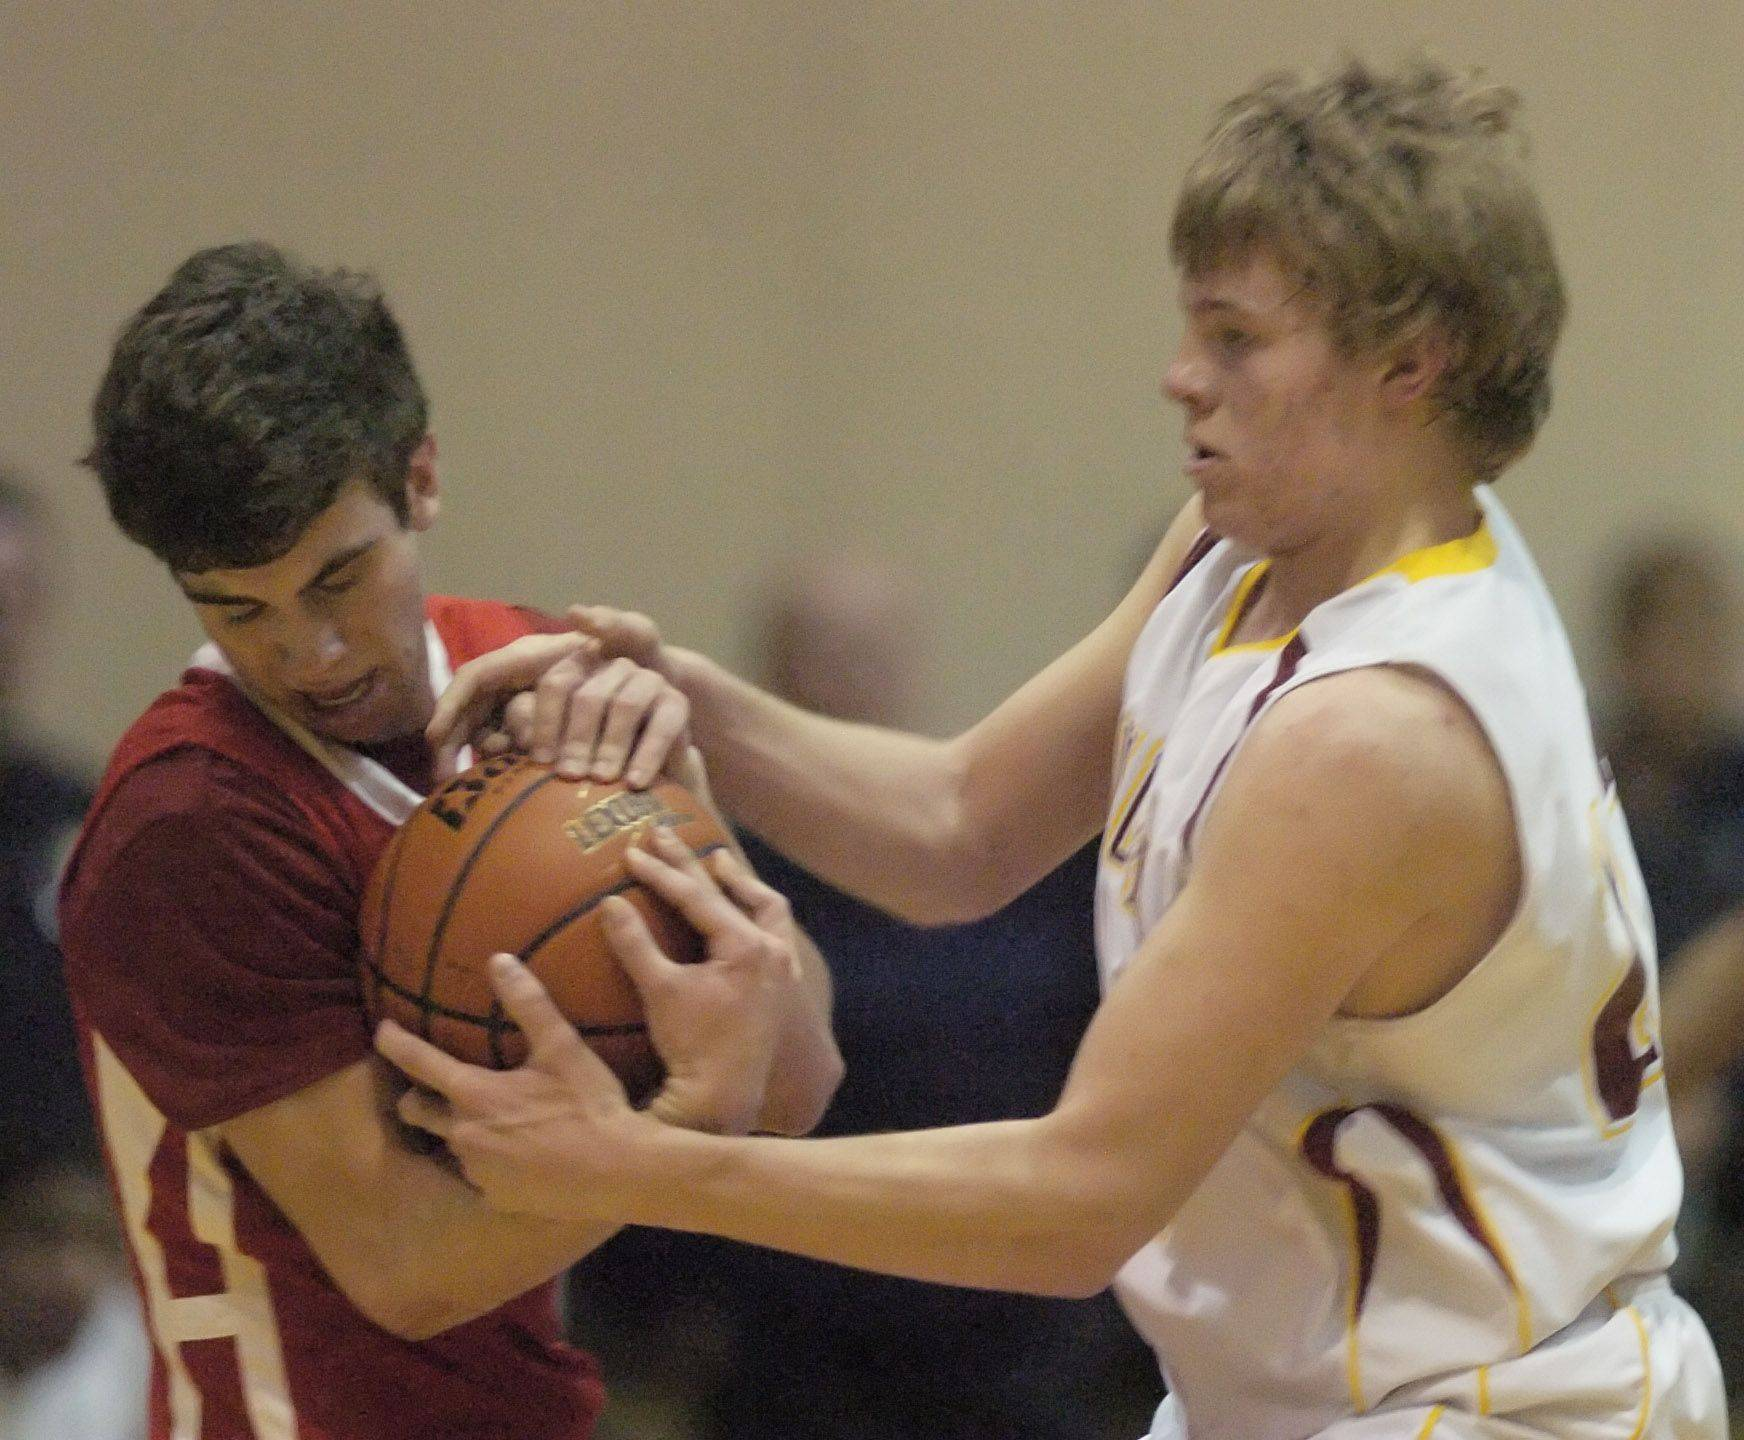 Schaumburg's Kyle Bolger, right, tries to grab the ball from Niles West's Nathan Sagett .